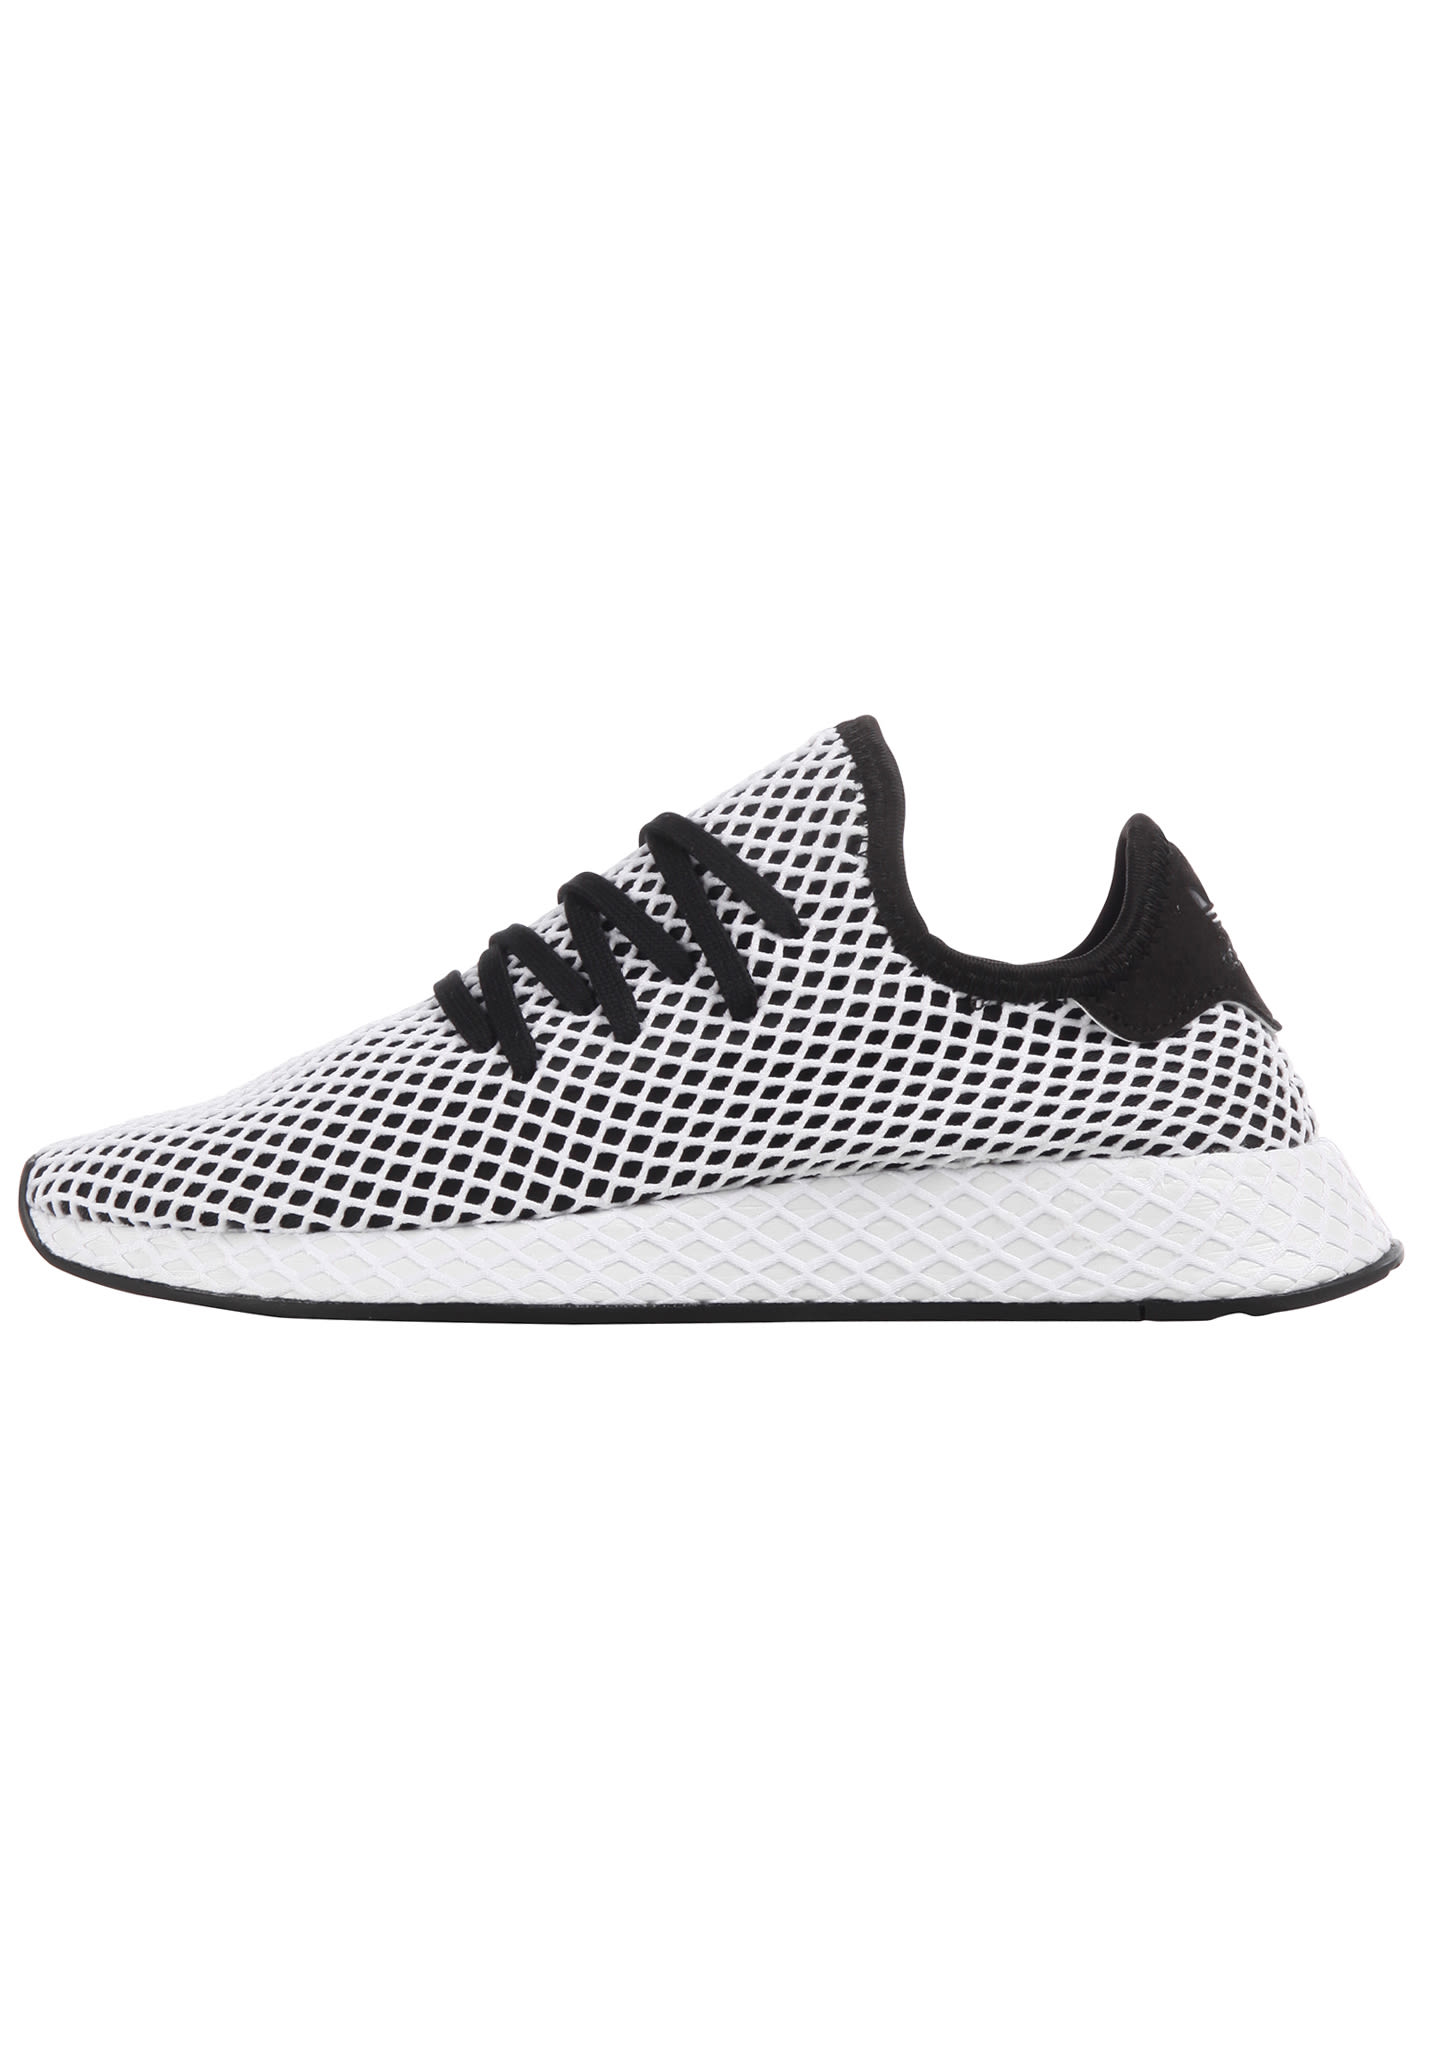 check out 4ea21 16e84 ADIDAS ORIGINALS Deerupt Runner - Sneakers for Men - Black - Planet Sports